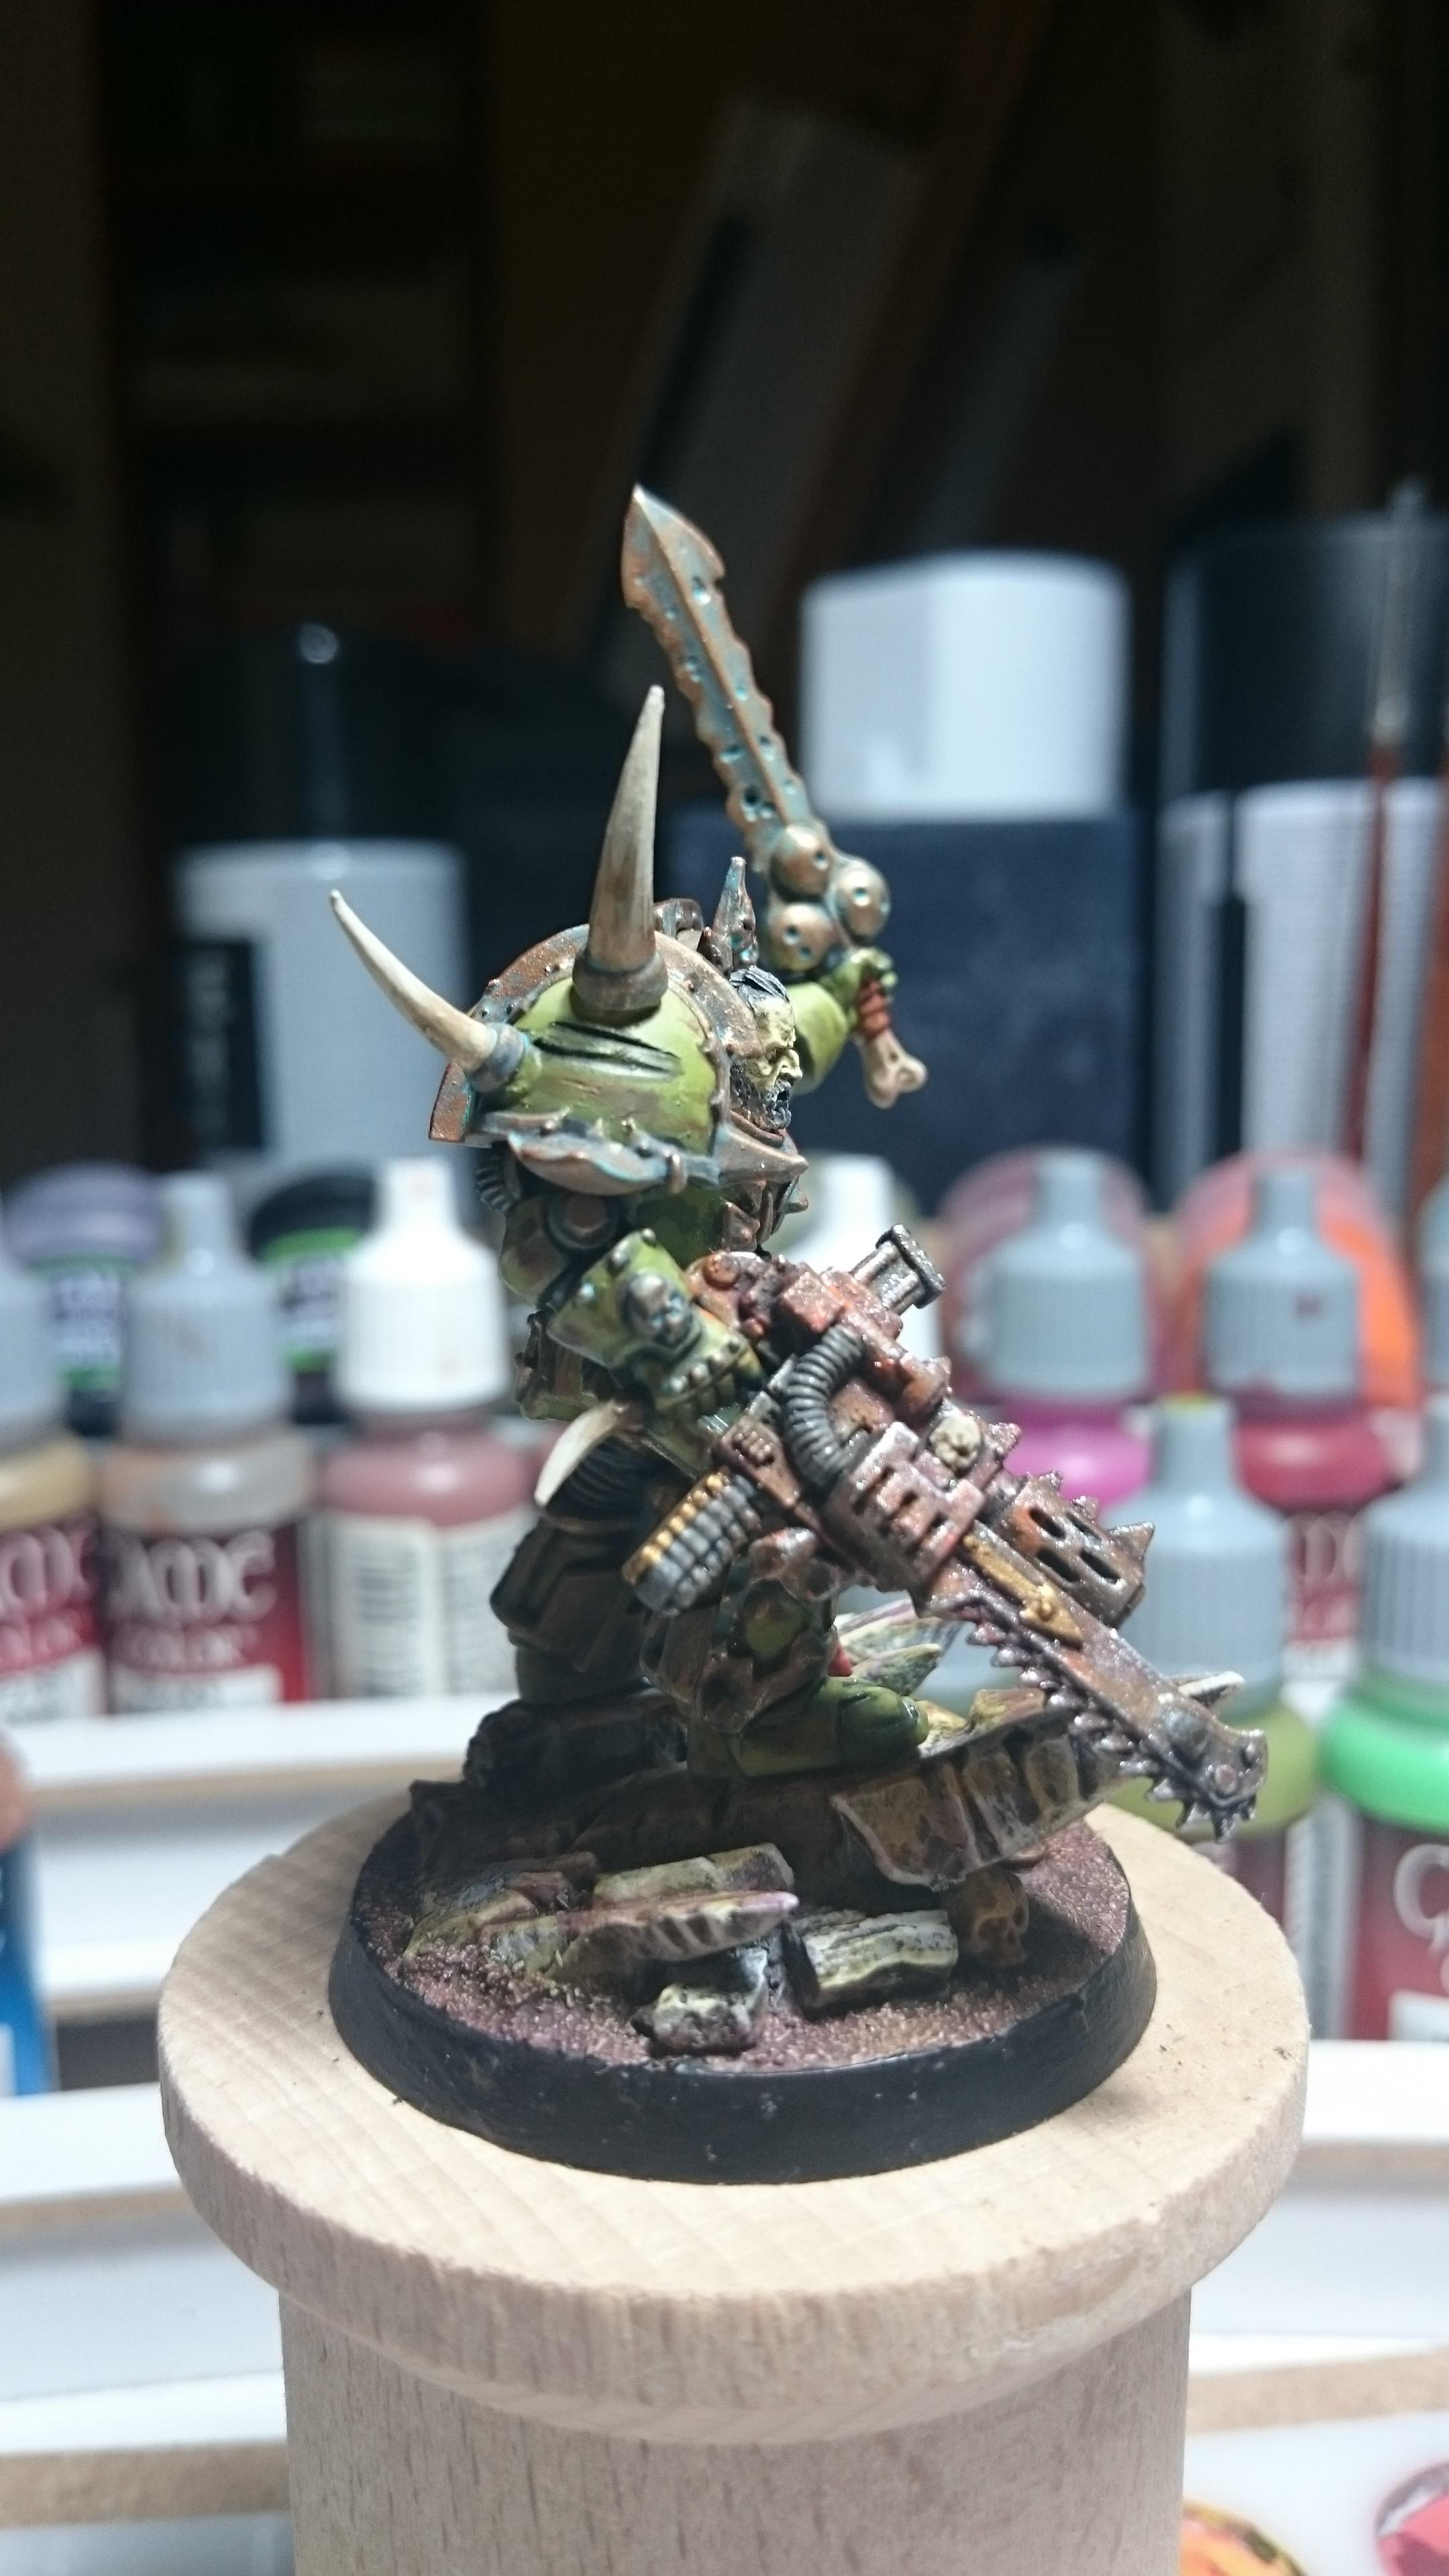 Chaos, Chaos Space Marines, Conversion, Daemons, Lord, Nurgle, Plague, Space, Space Marines, Terminator Armor, Warhammer 40,000, Warhammer Fantasy, Wh40